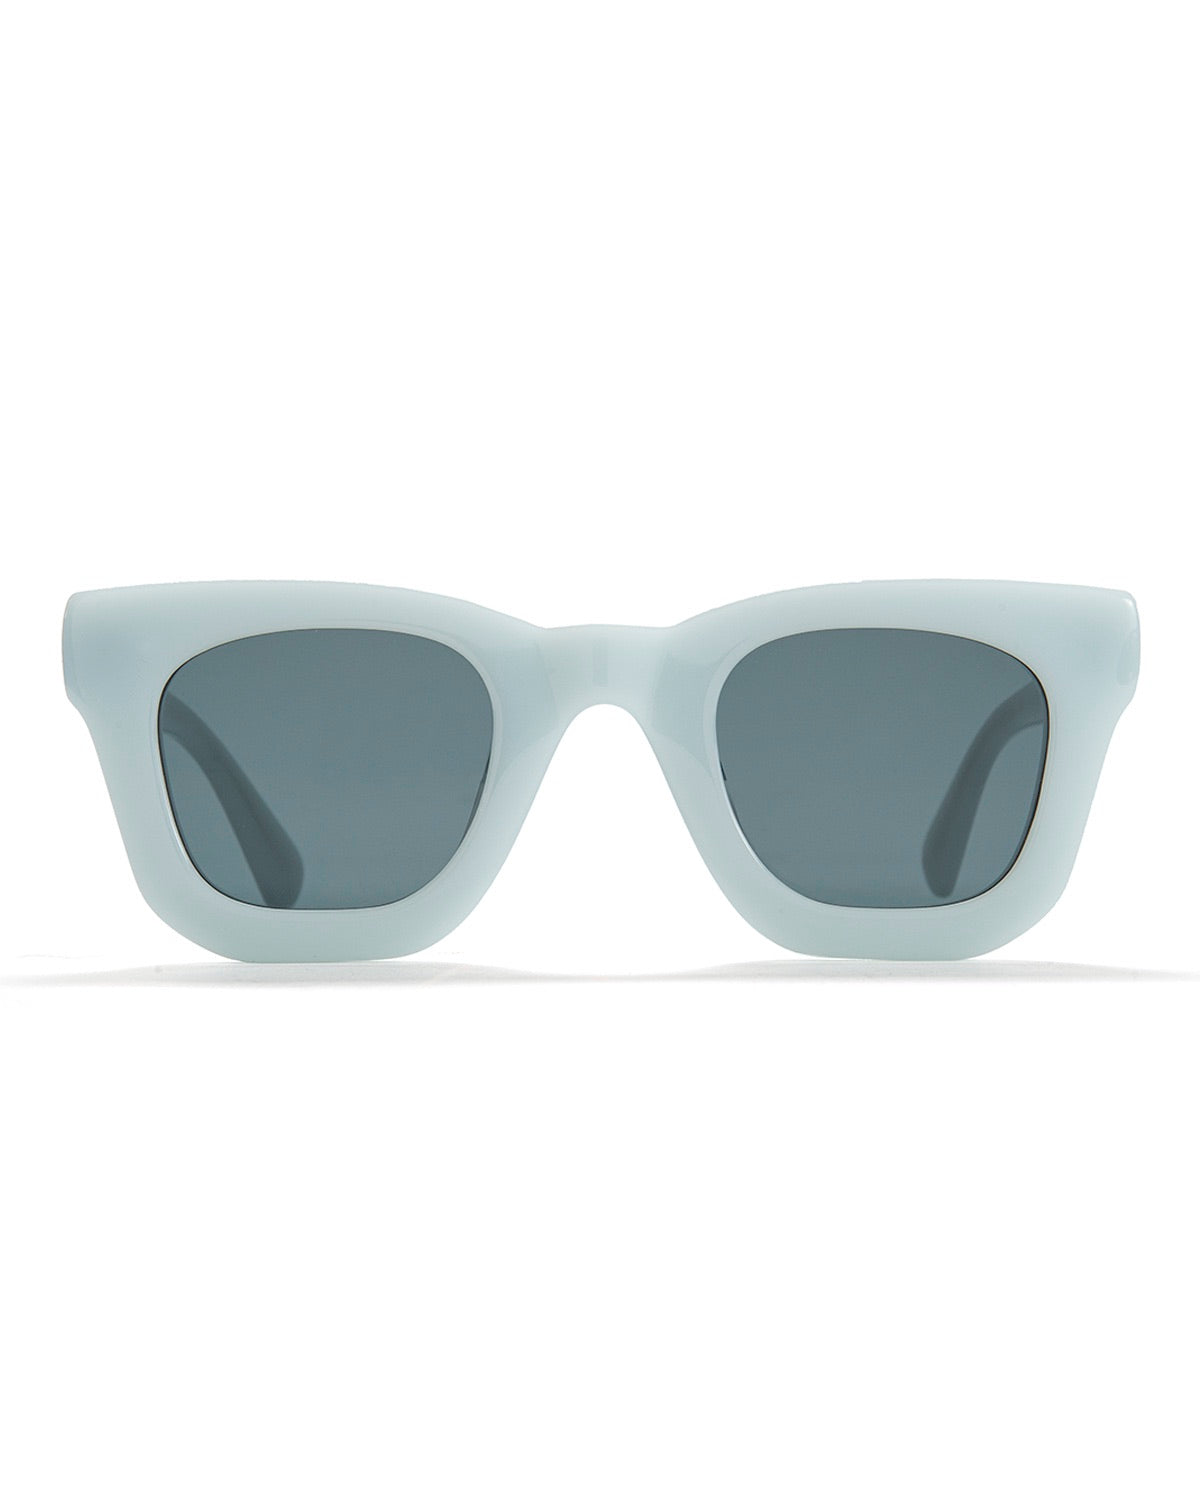 Elia Sunglasses - Light Blue